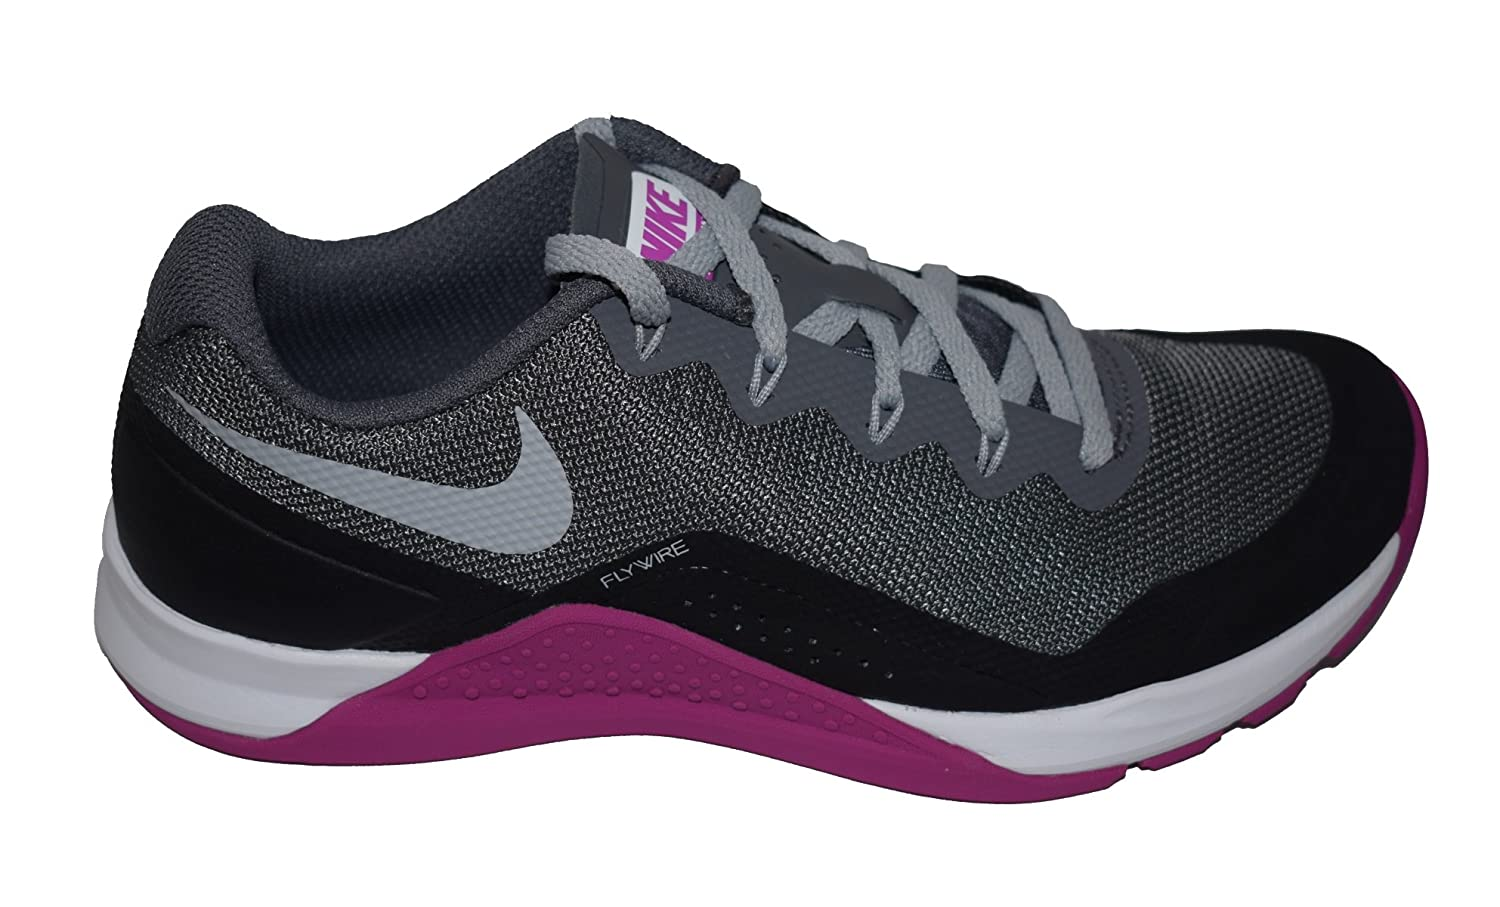 NIKE Women's Metcon Repper DSX Cross US|Dark Trainer B00HUAH52Y 5 B(M) US|Dark Cross Grey/Wolf Grey-black-hyper Violet e45ec8